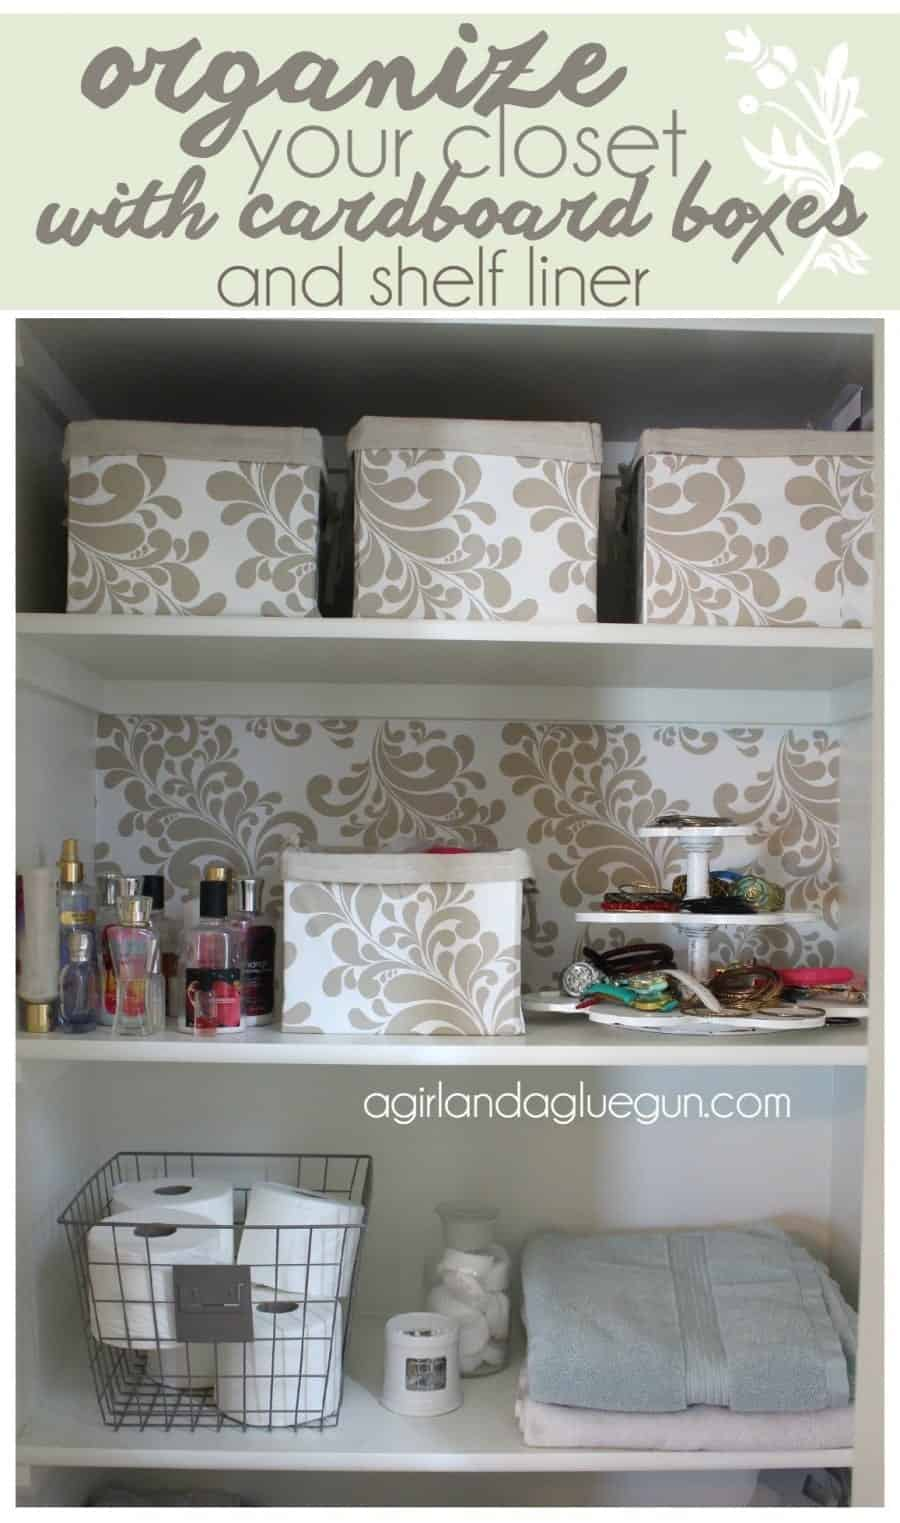 organize-your-closet-with-cardboard-boxes-and-shelf-liner-900x1523